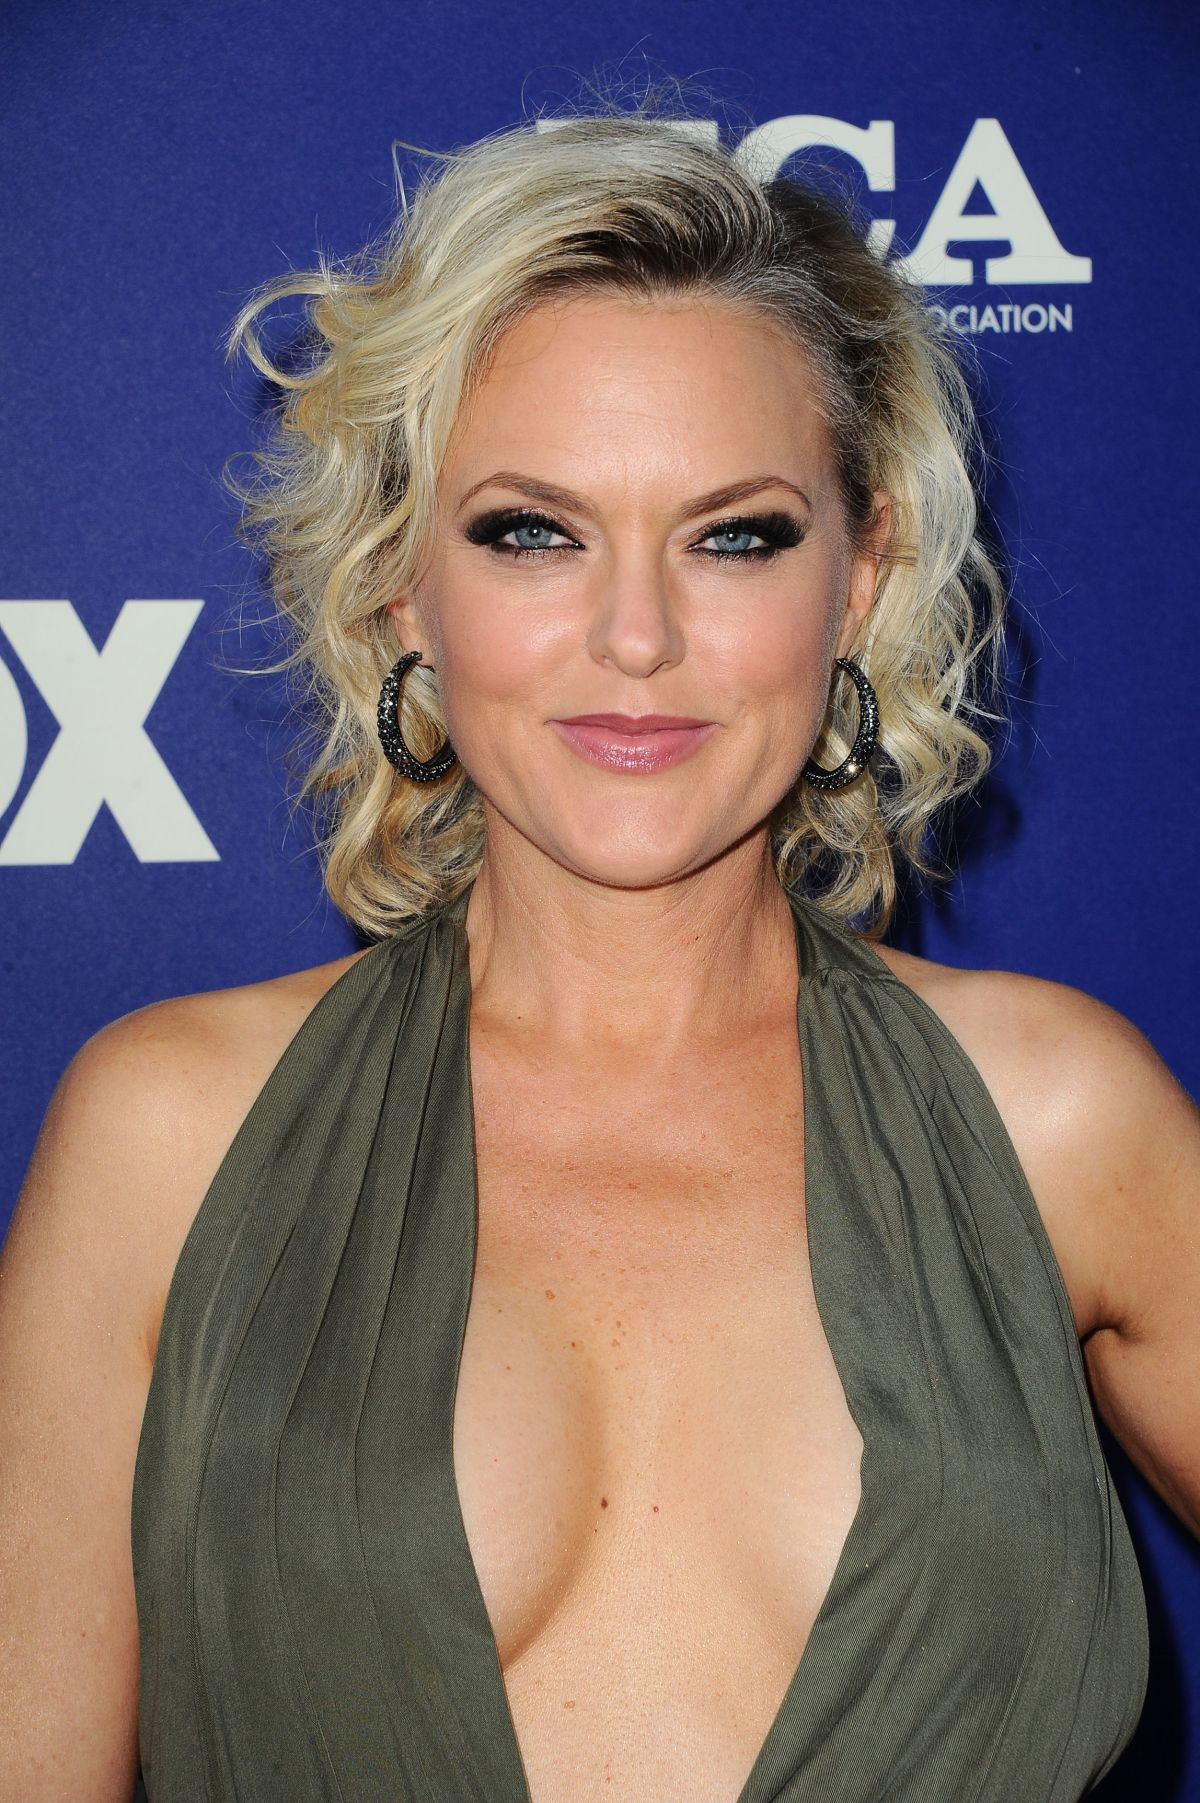 elaine hendrix filmographyelaine hendrix movies, elaine hendrix 2016, elaine hendrix age, elaine hendrix parent trap, elaine hendrix imdb, elaine hendrix friends, elaine hendrix net worth, elaine hendrix 2017, elaine hendrix movies and tv shows, elaine hendrix 50 first dates, elaine hendrix now, elaine hendrix instagram, elaine hendrix movies list, elaine hendrix 90210, elaine hendrix 1998, elaine hendrix look alike, elaine hendrix twitter, elaine hendrix family, elaine hendrix charmed, elaine hendrix filmography